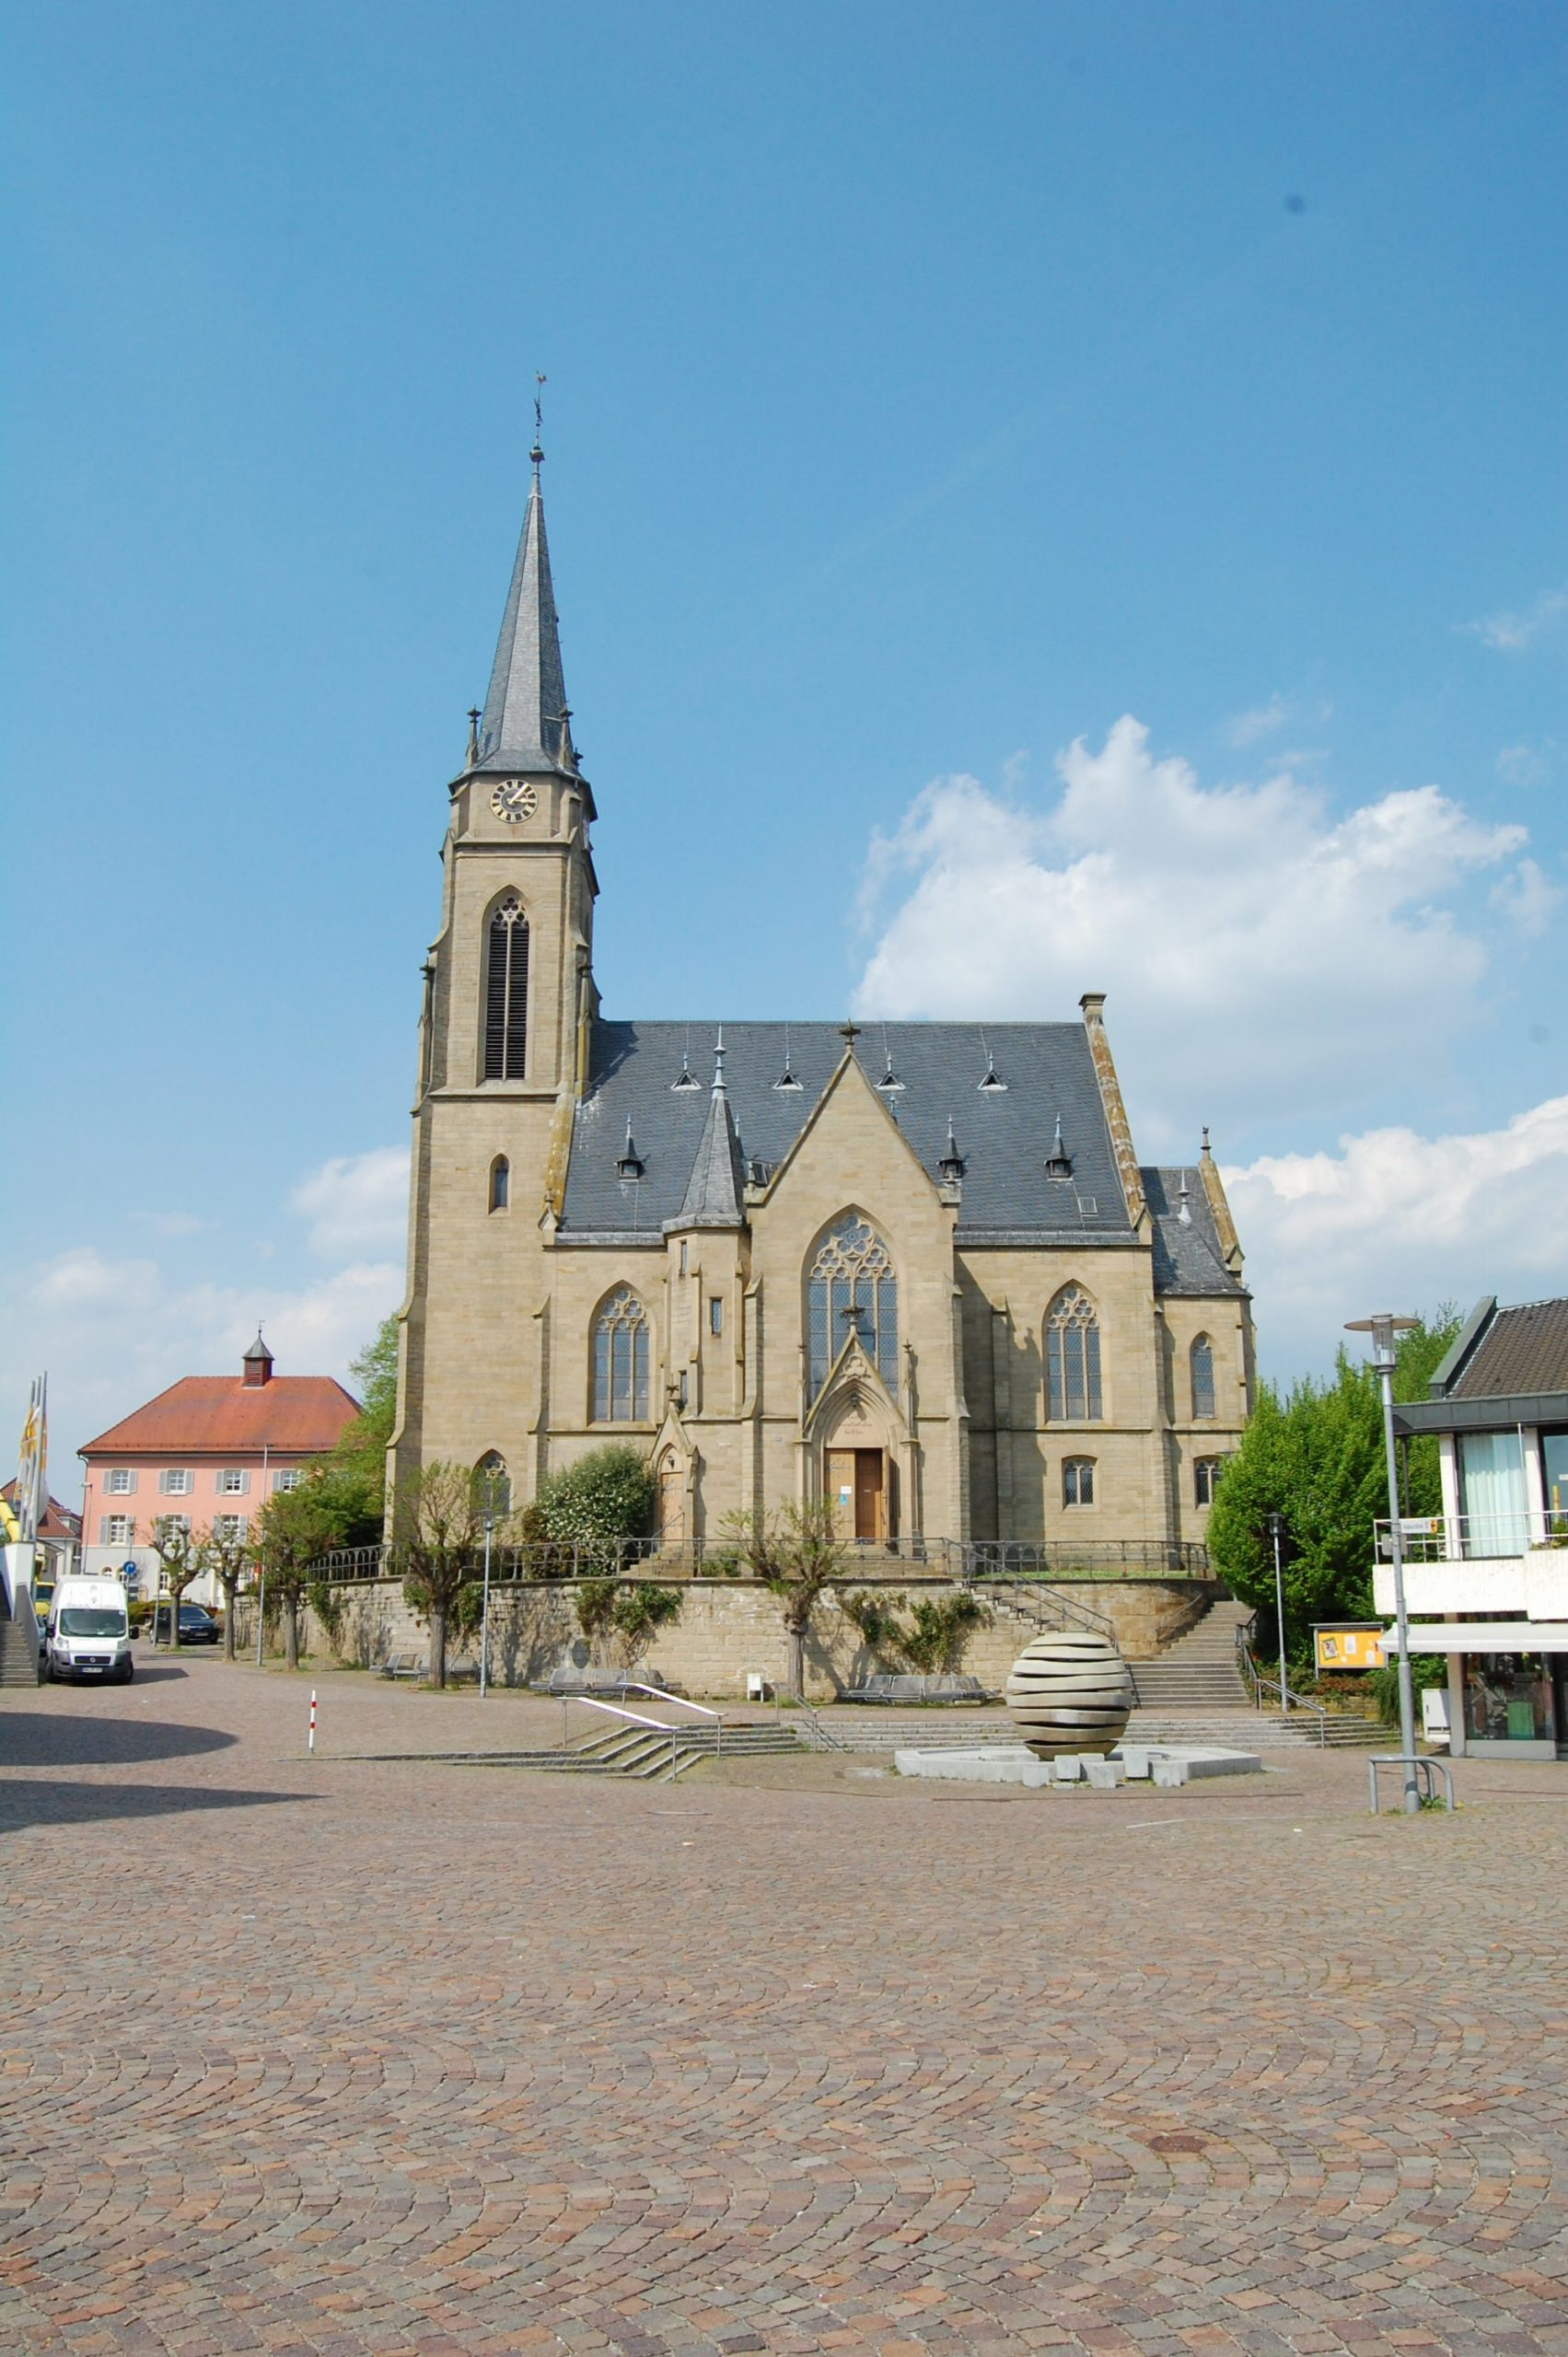 Kirche in Bad Rappenau